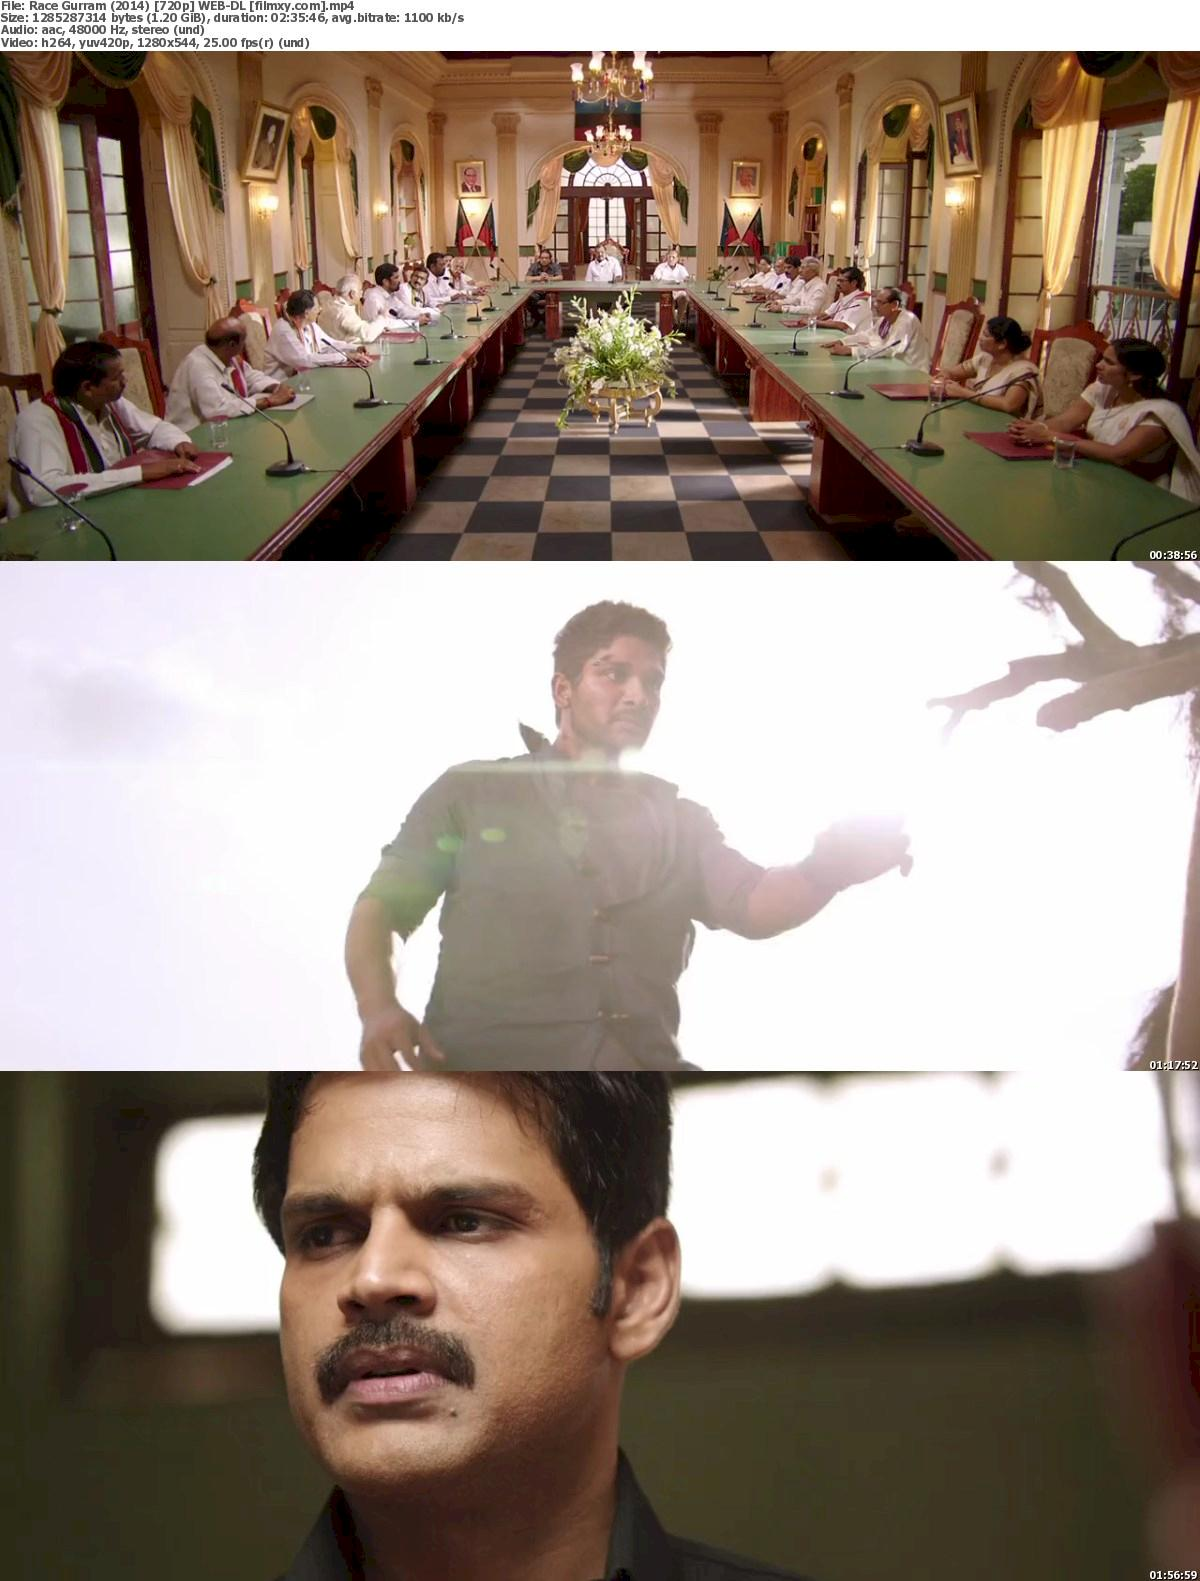 Race Gurram (2014) 720p & 1080p WEB-DL Free Download 720p Screenshot